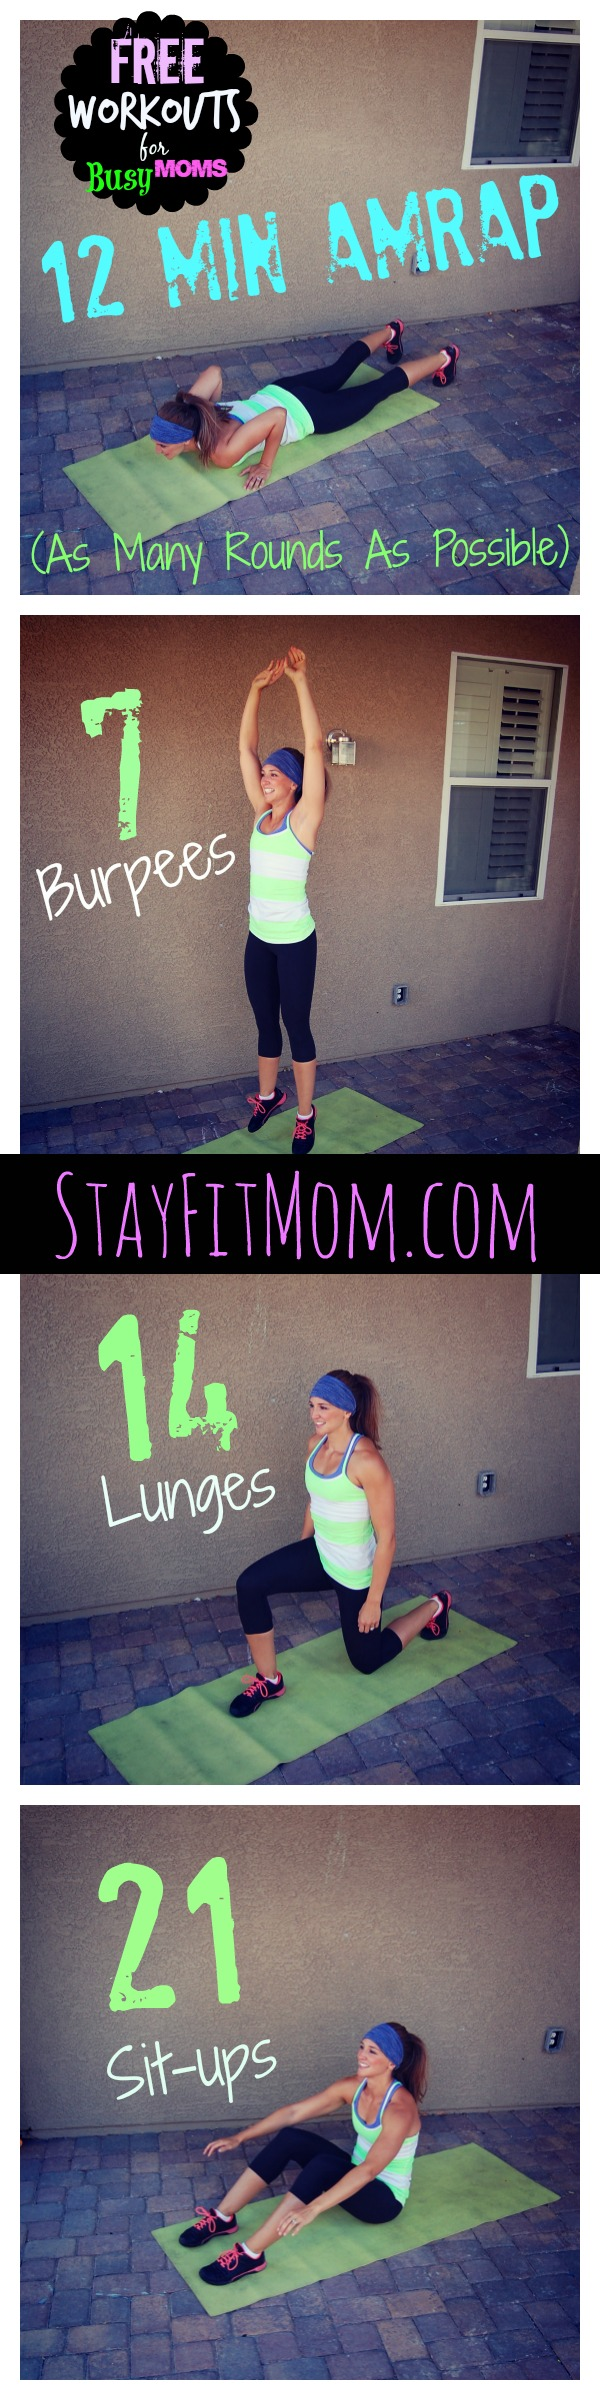 This is at home workout from stayfitmom.com will get your heart rate up and will leave you burning fat all day long.